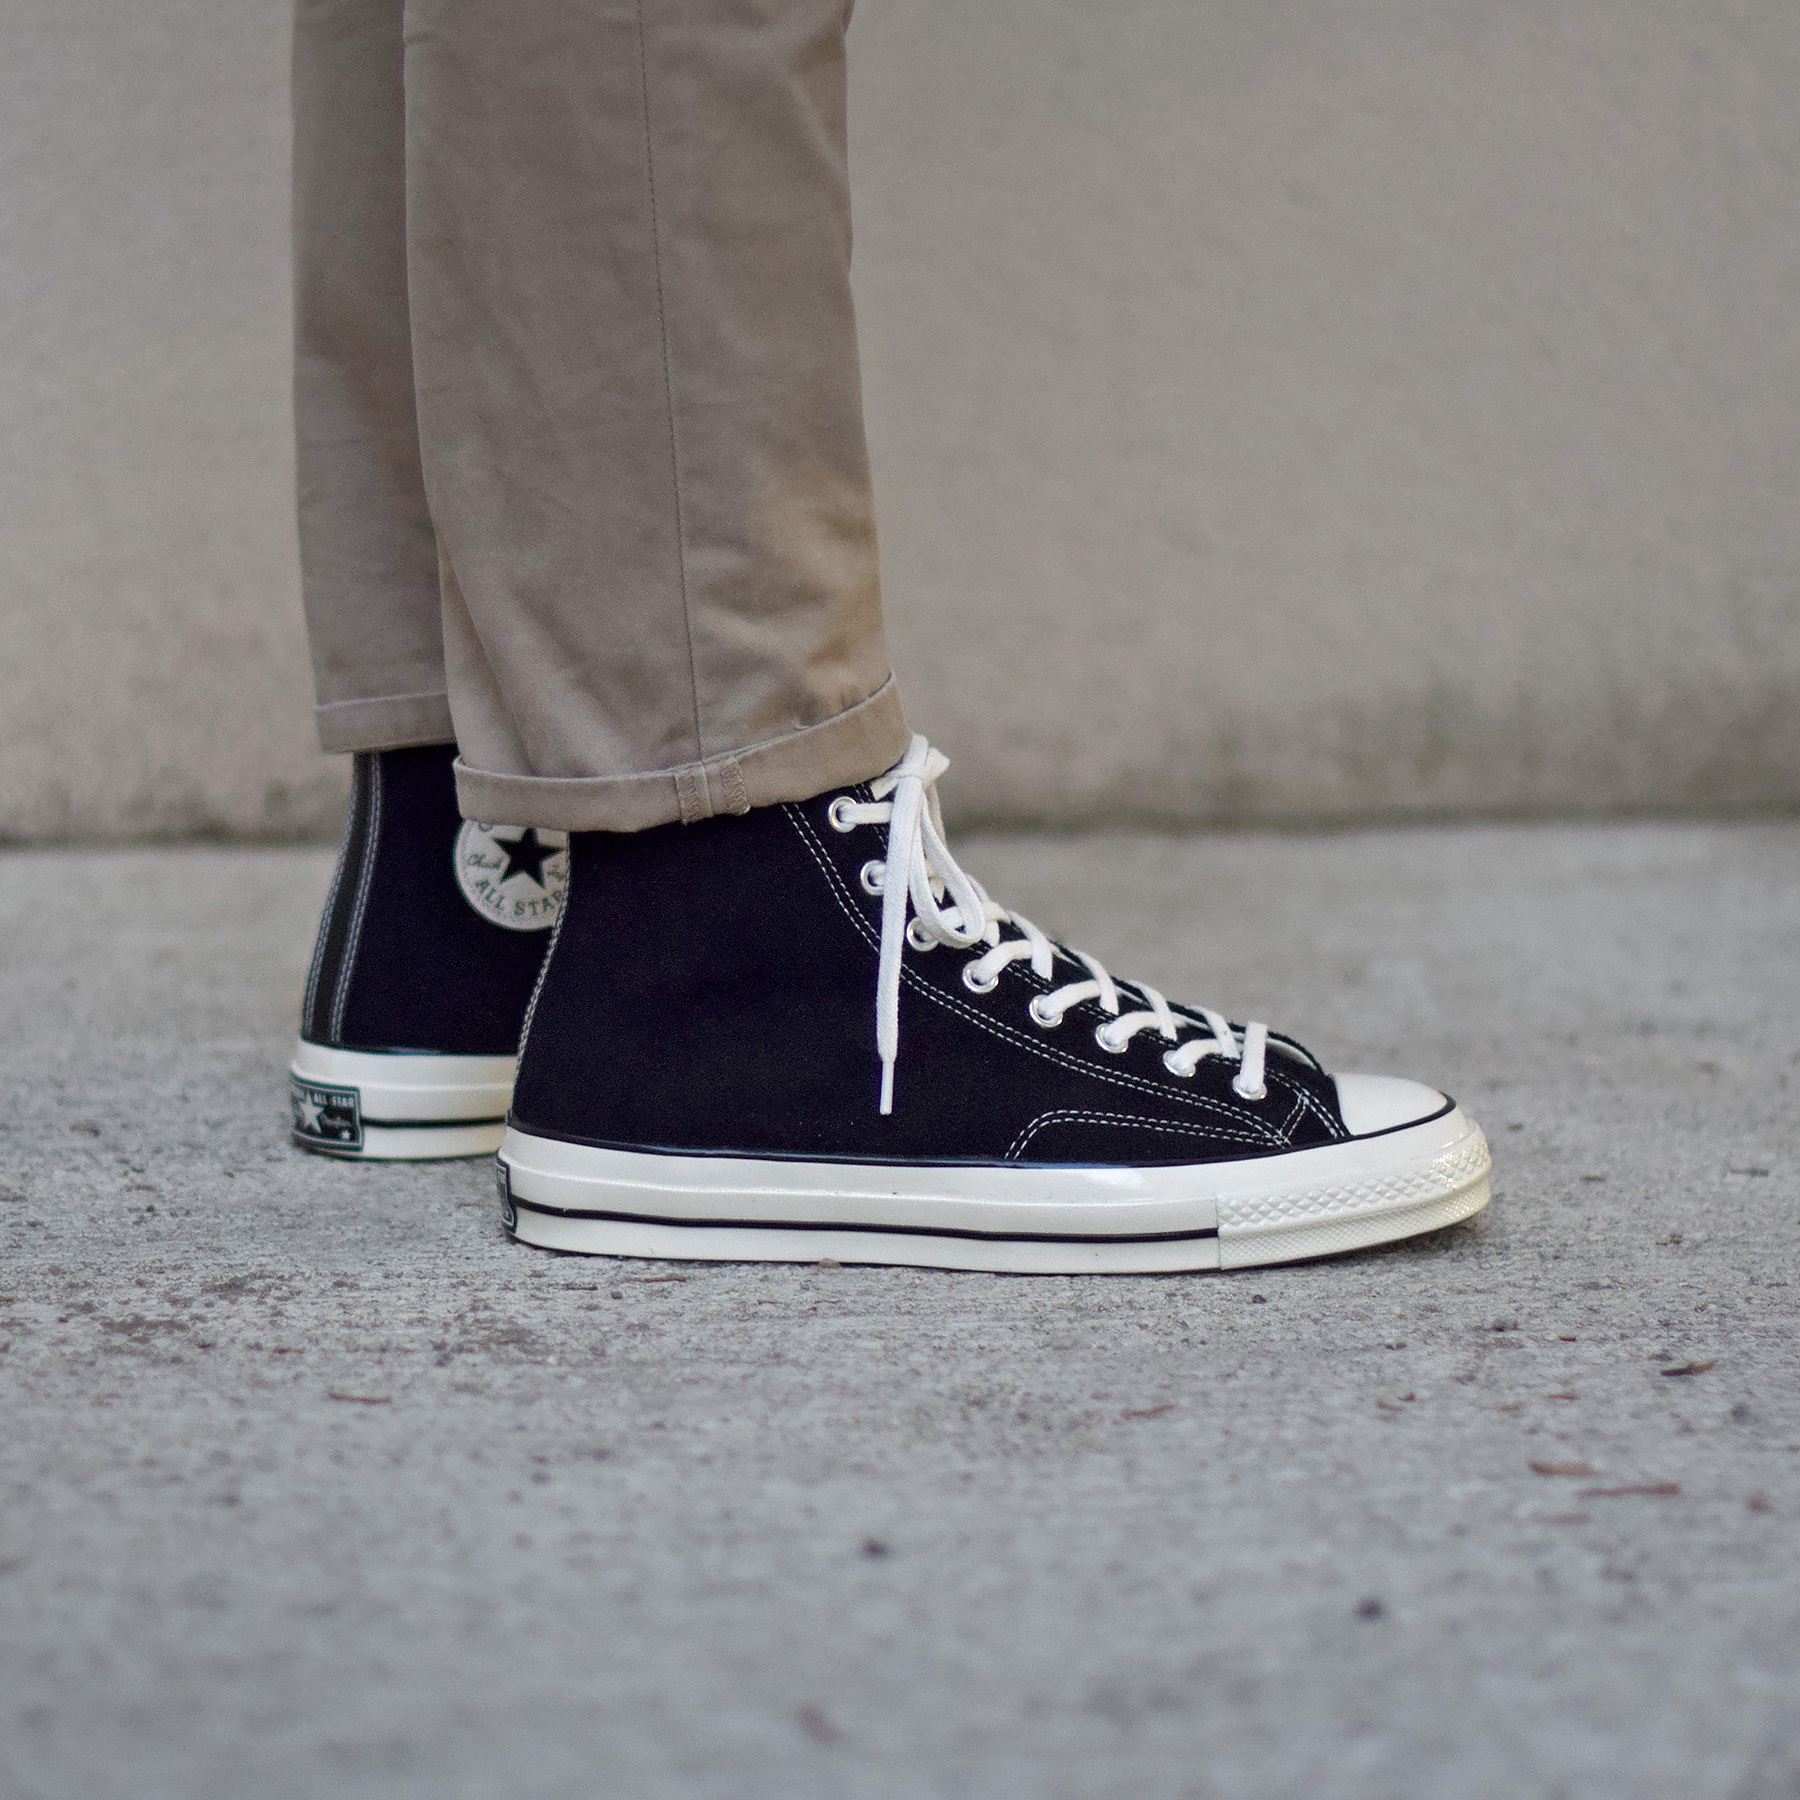 Converse Chuck Taylor All Star 70 Suede Pack - Sneakers.fr